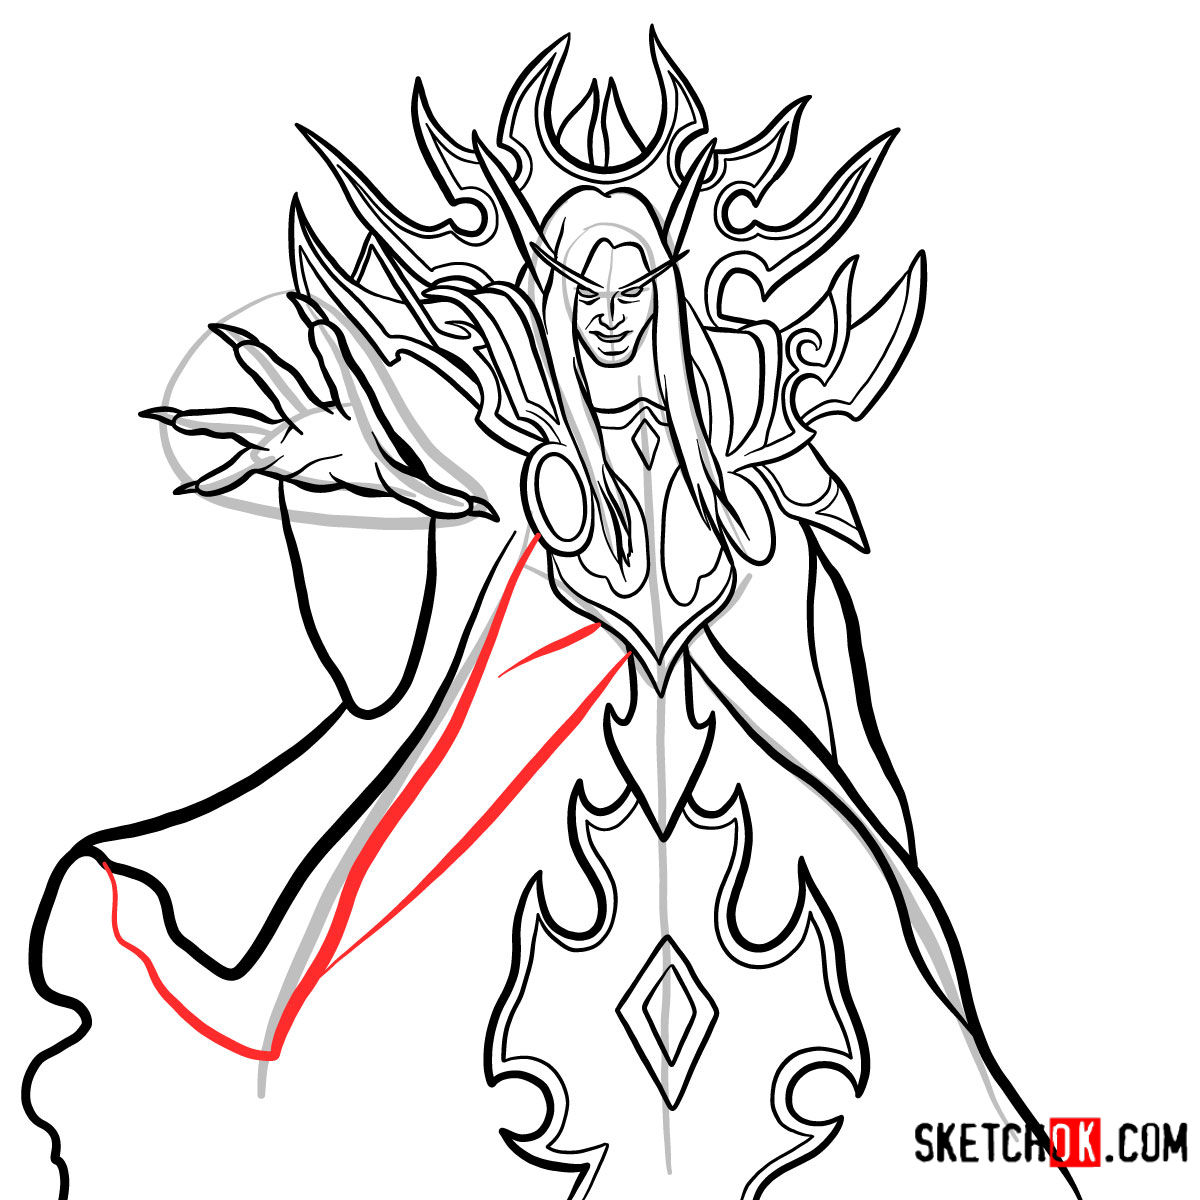 How to draw Kael'thas Sunstrider | World of Warcraft - step 14